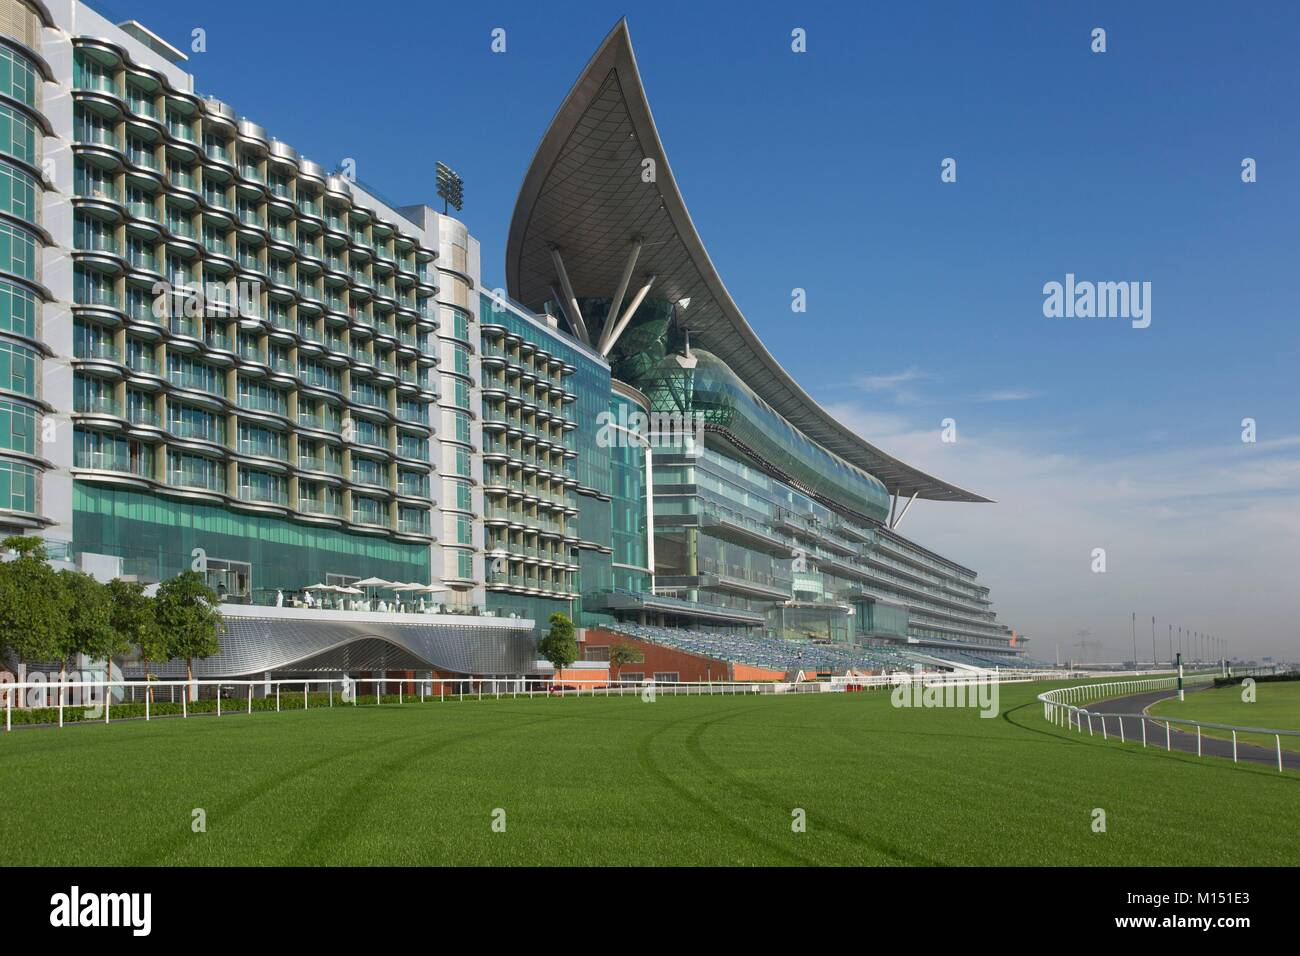 Emirats arabes unis, dubaï, Meydan Race Course Photo Stock